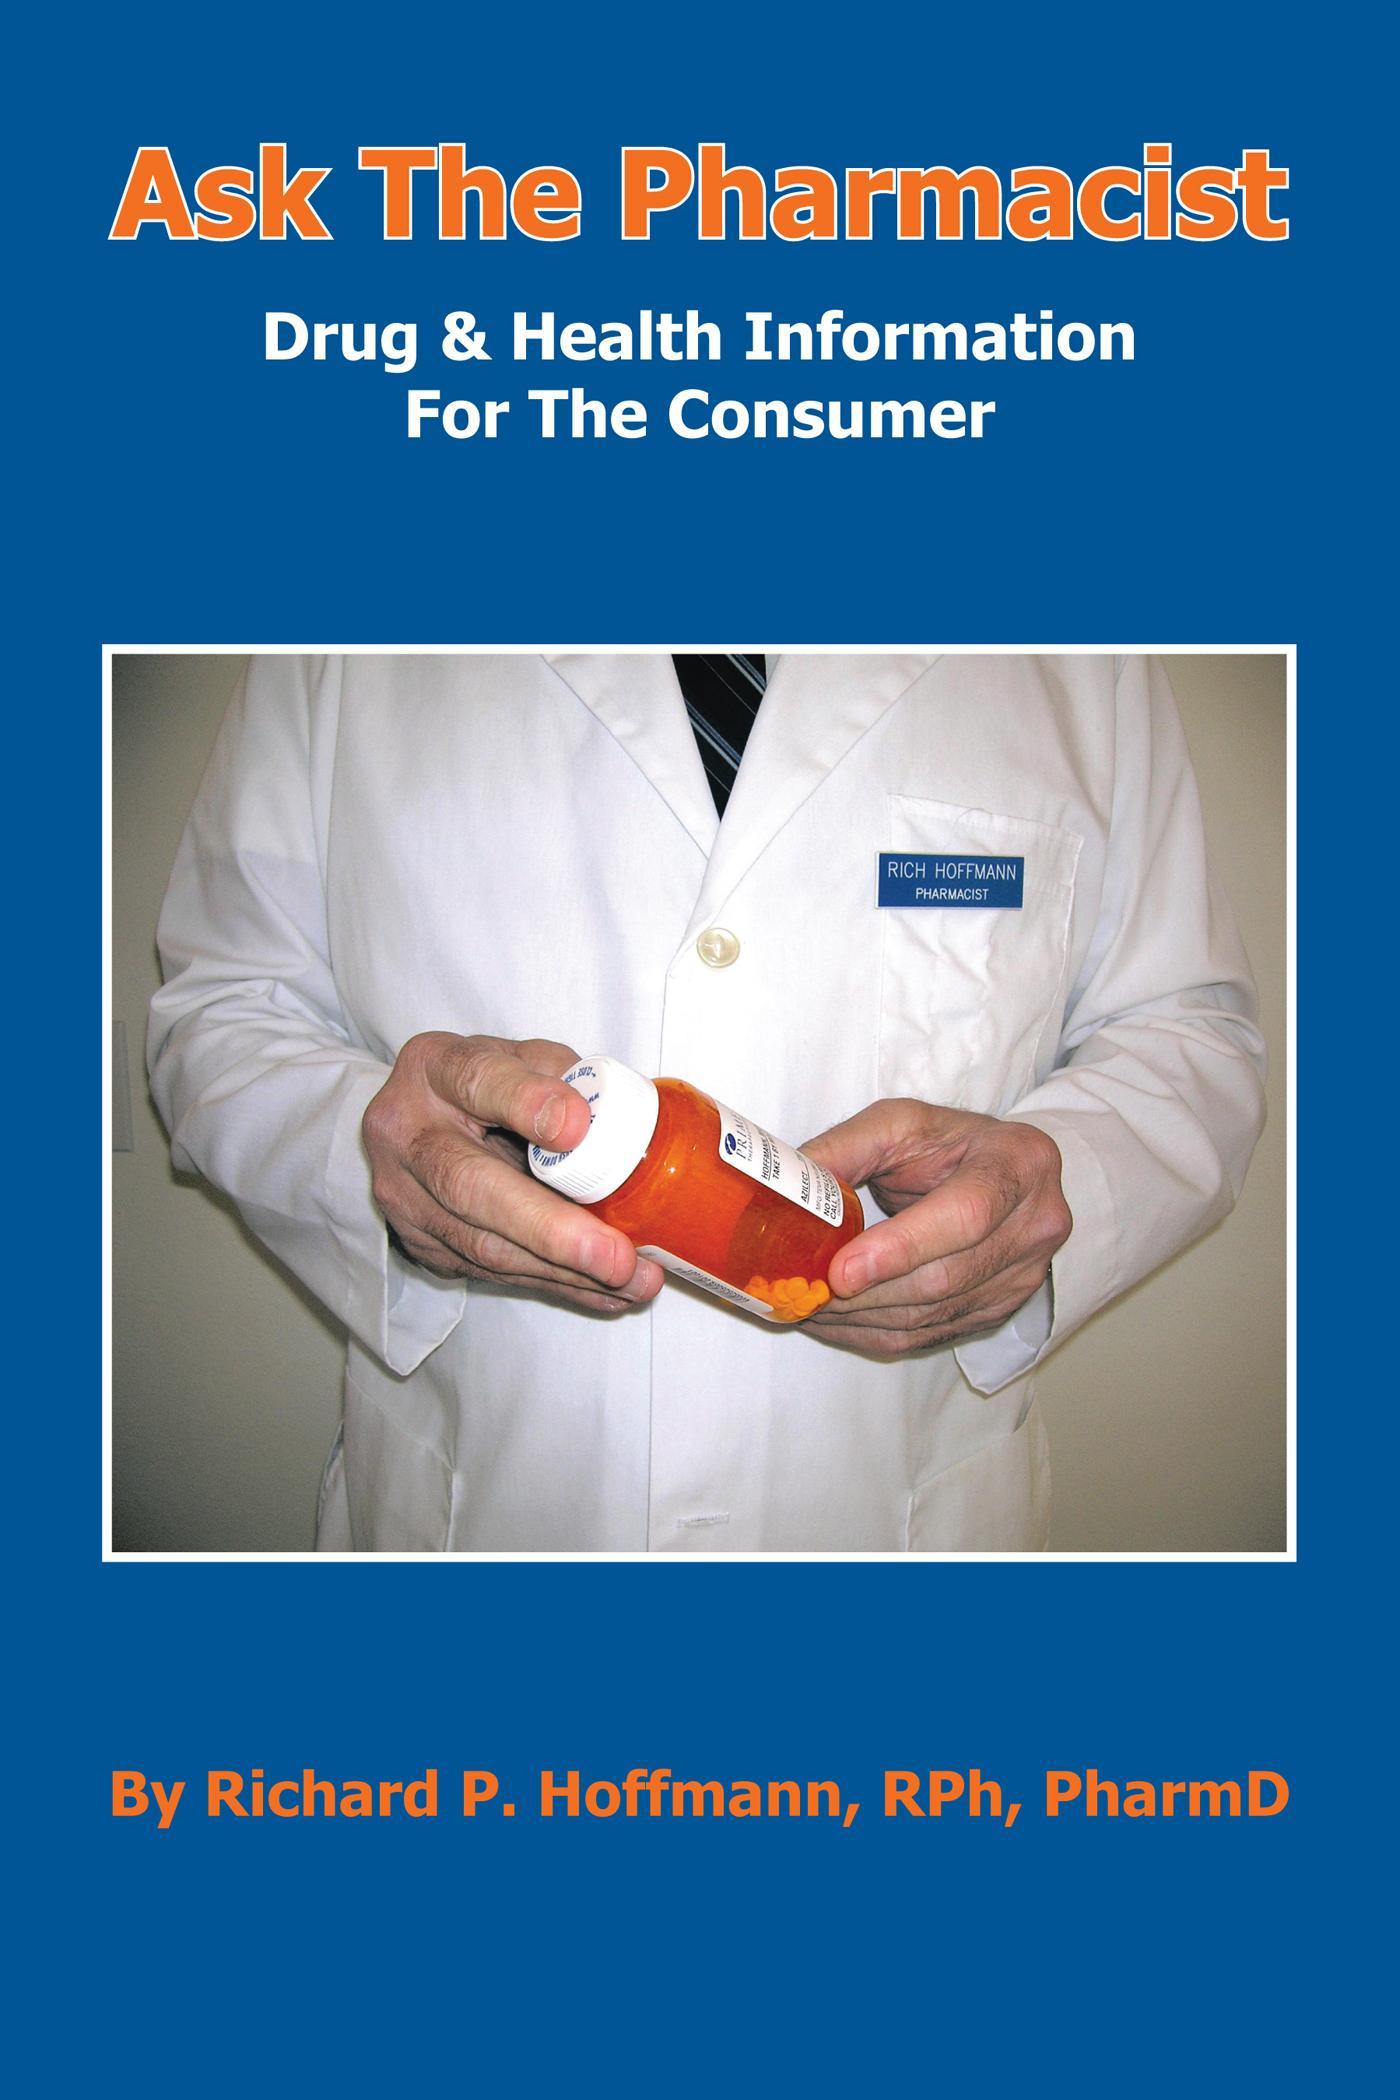 Ask The Pharmacist: Drug & Health Information For The Consumer